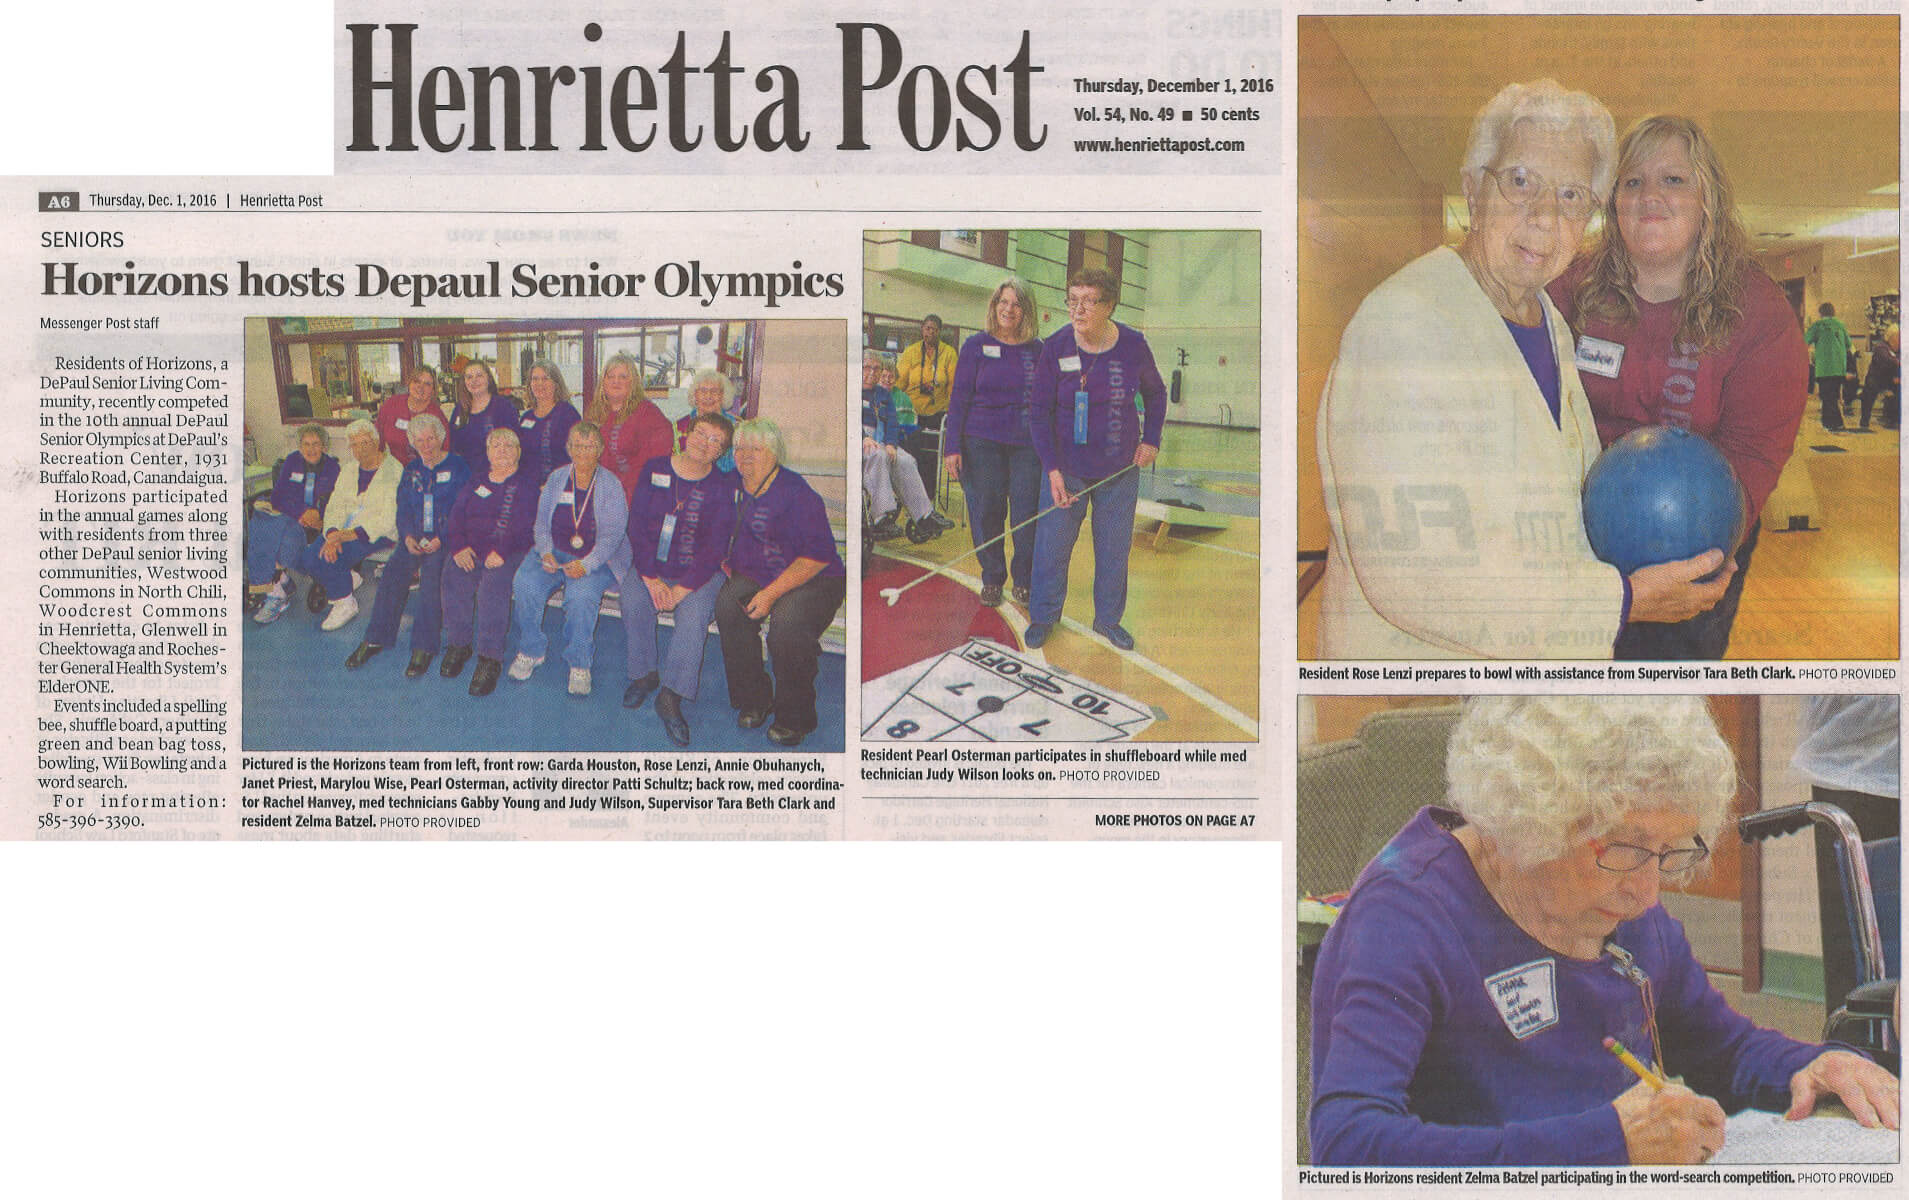 Horizons Assisted Living Hosts DePaul Senior Olympics story in the Henrietta Post December 1, 2016